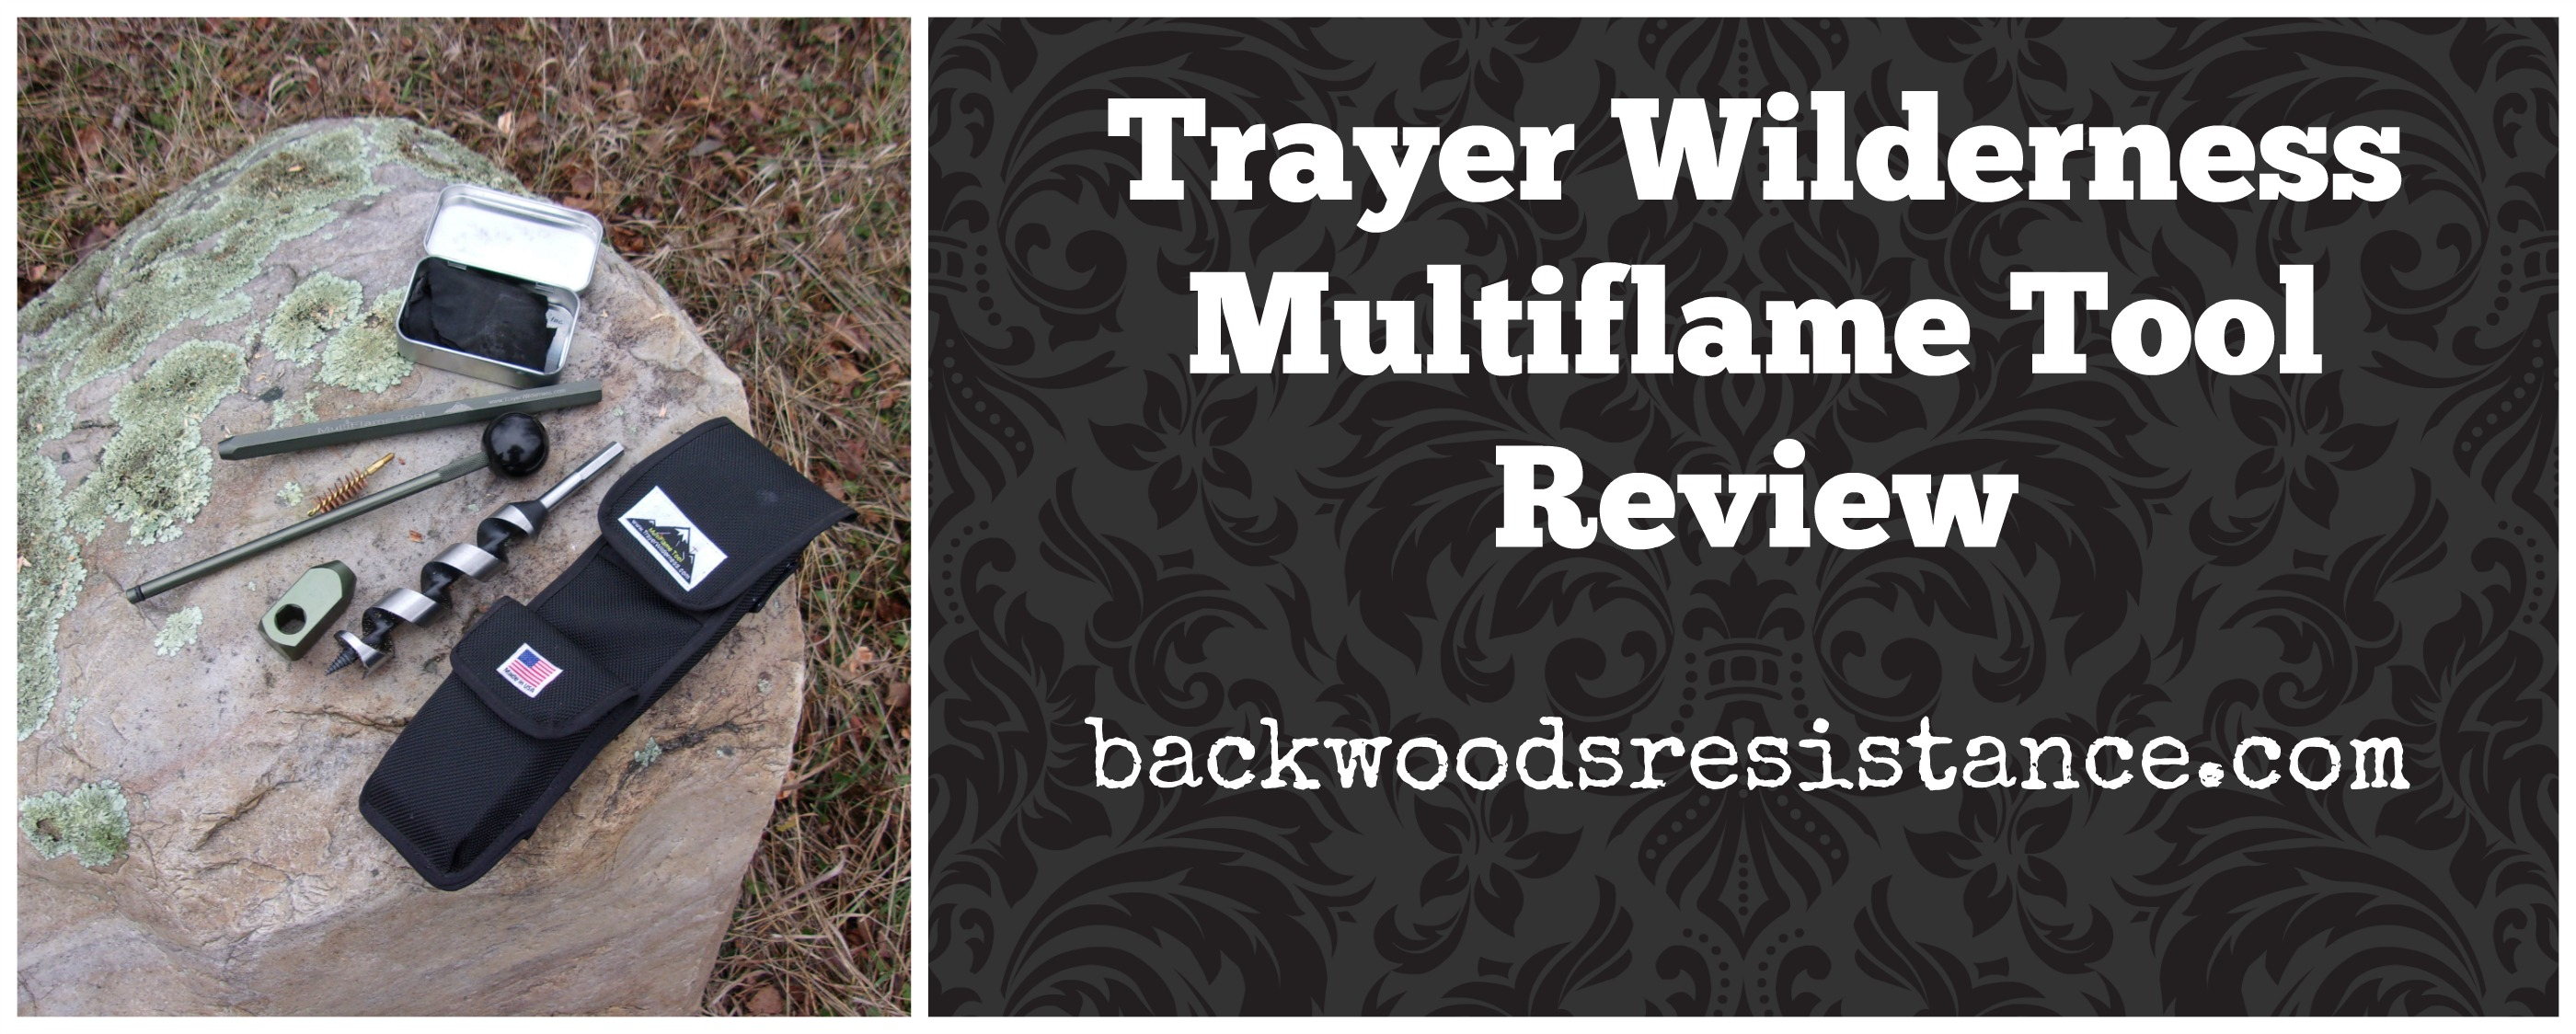 Trayer Wilderness Multiflame Tool Review